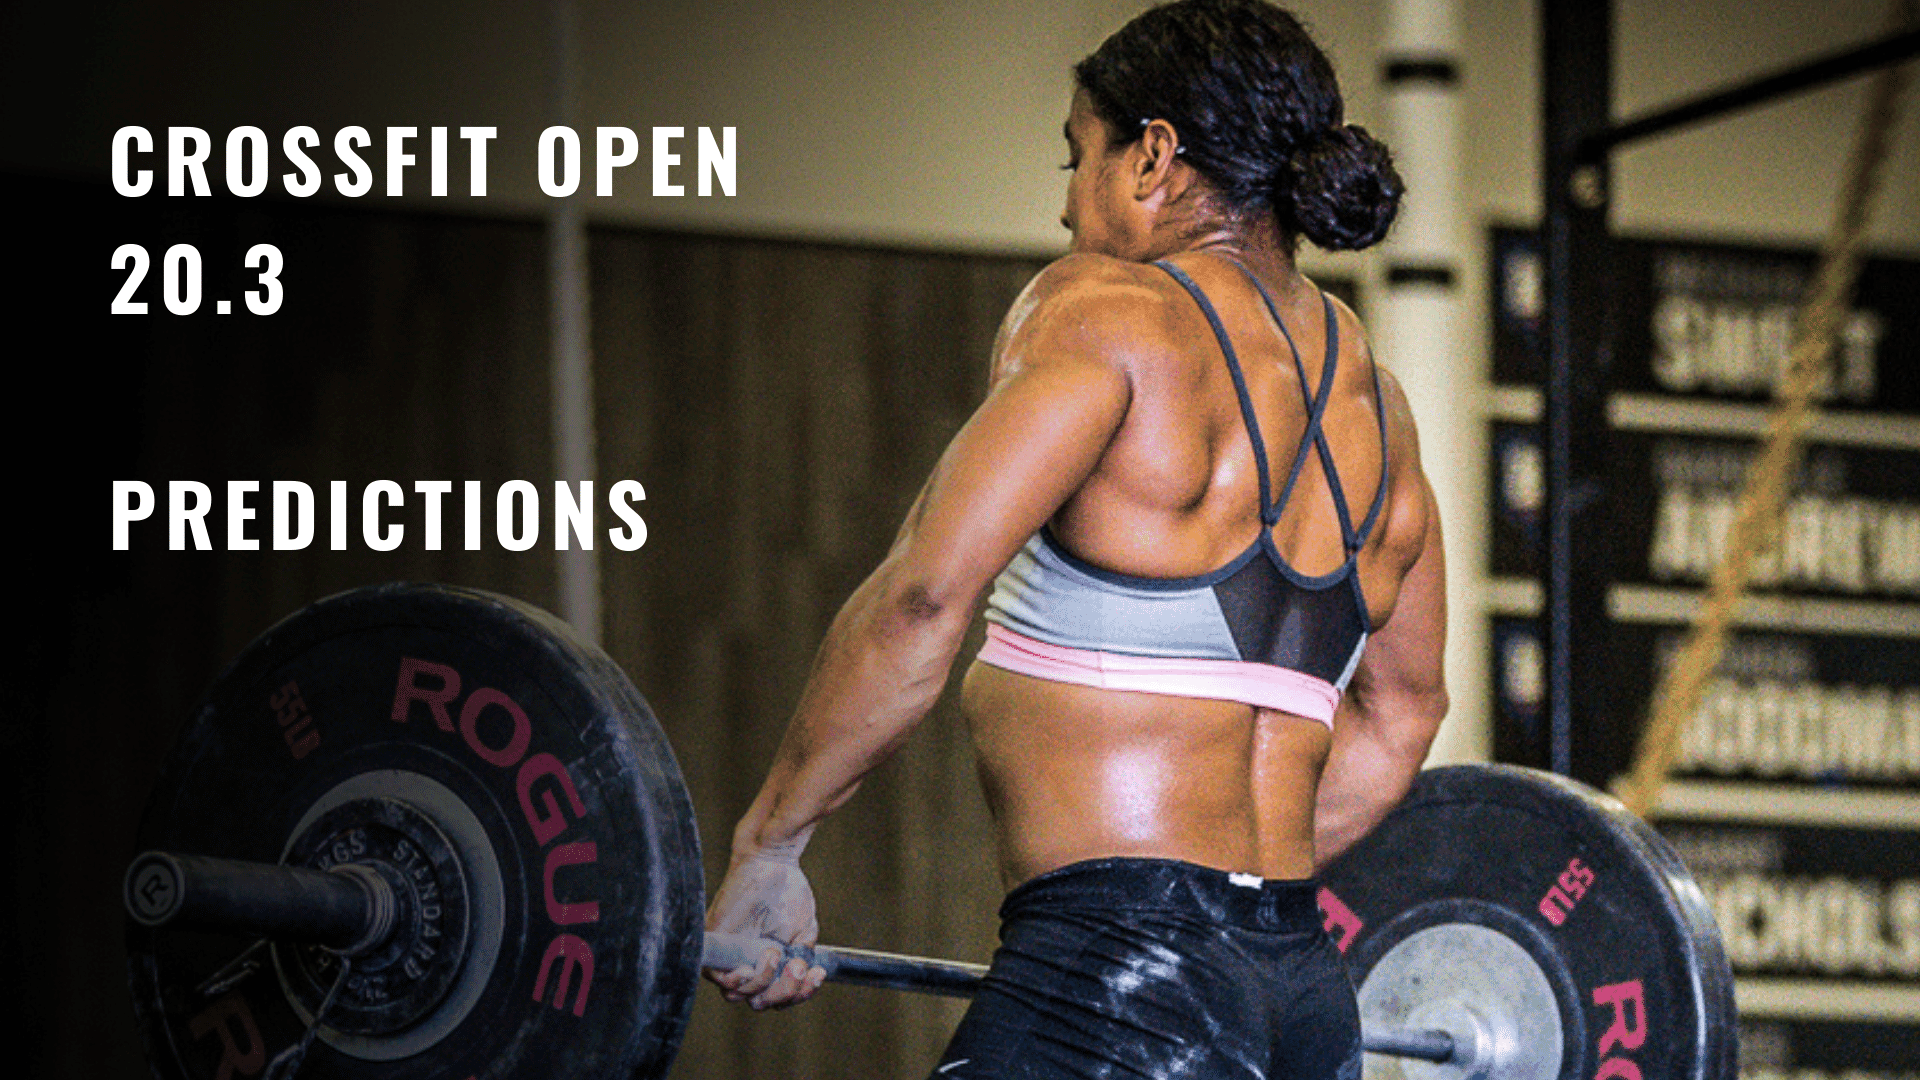 CROSSFIT OPEN 20.3 WORKOUT PREDICTIONS AND COMMENTARY